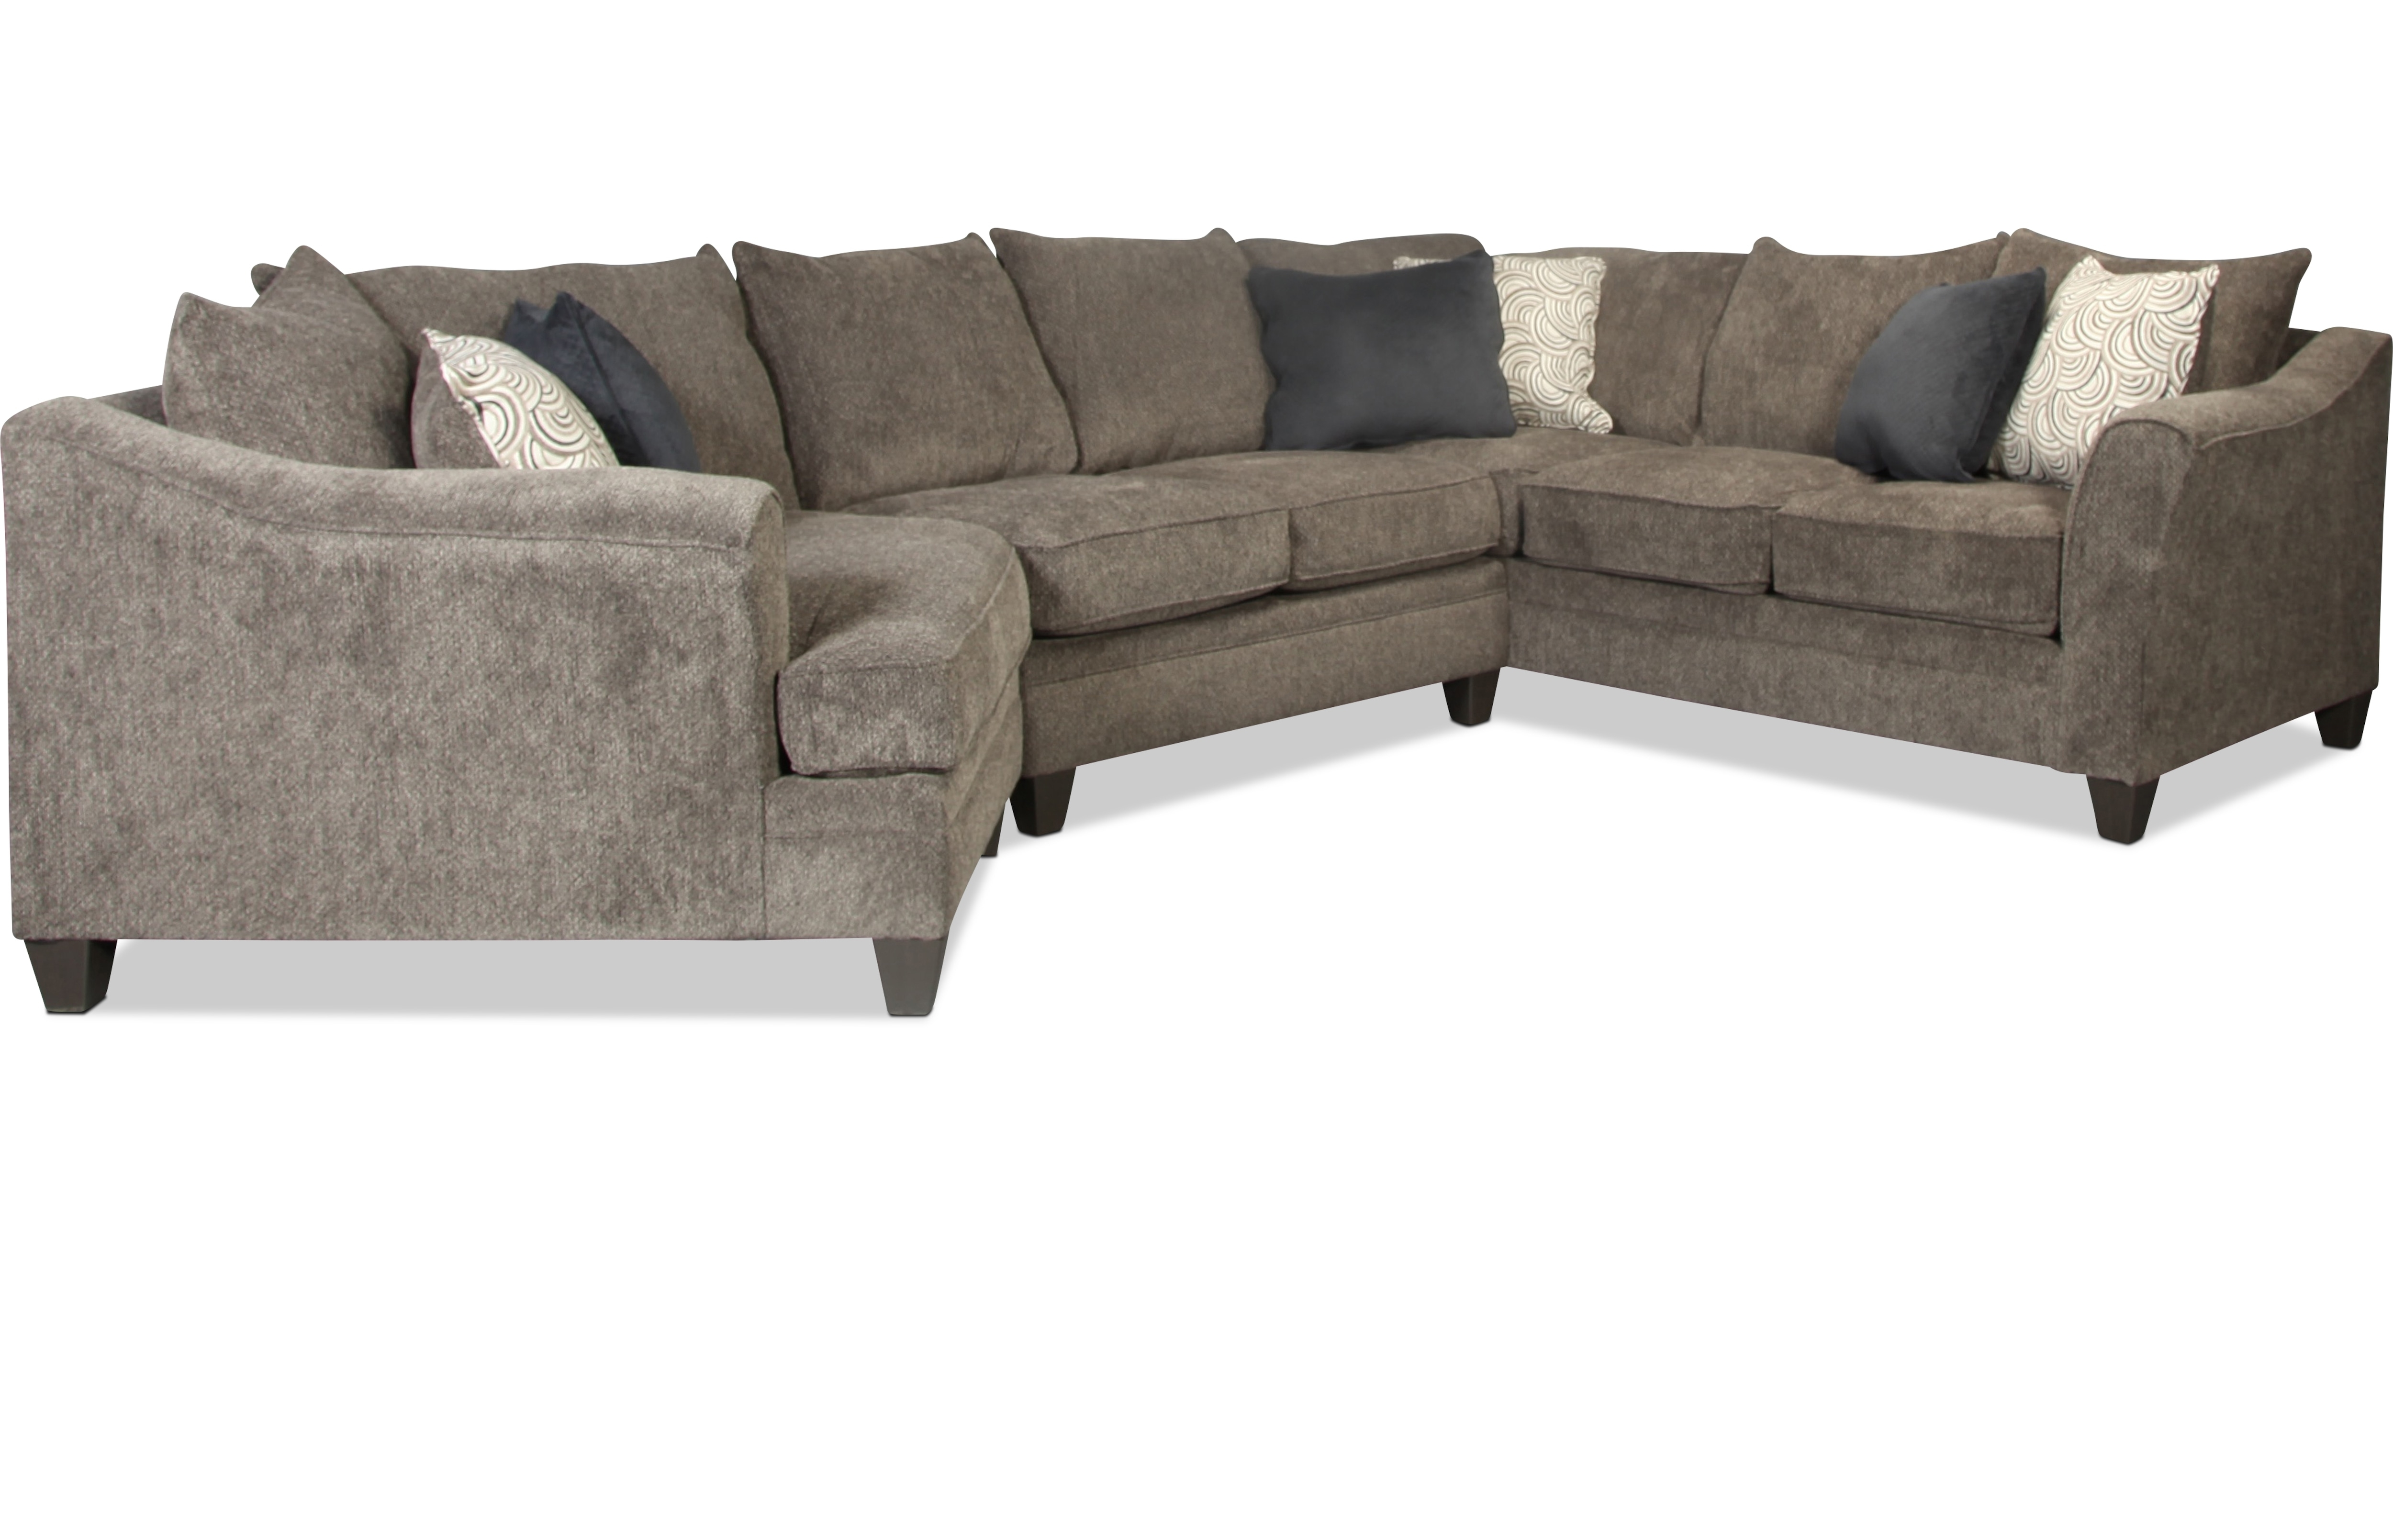 Sectionals | Levin Furniture Within Sierra Down 3 Piece Sectionals With Laf Chaise (Image 21 of 25)